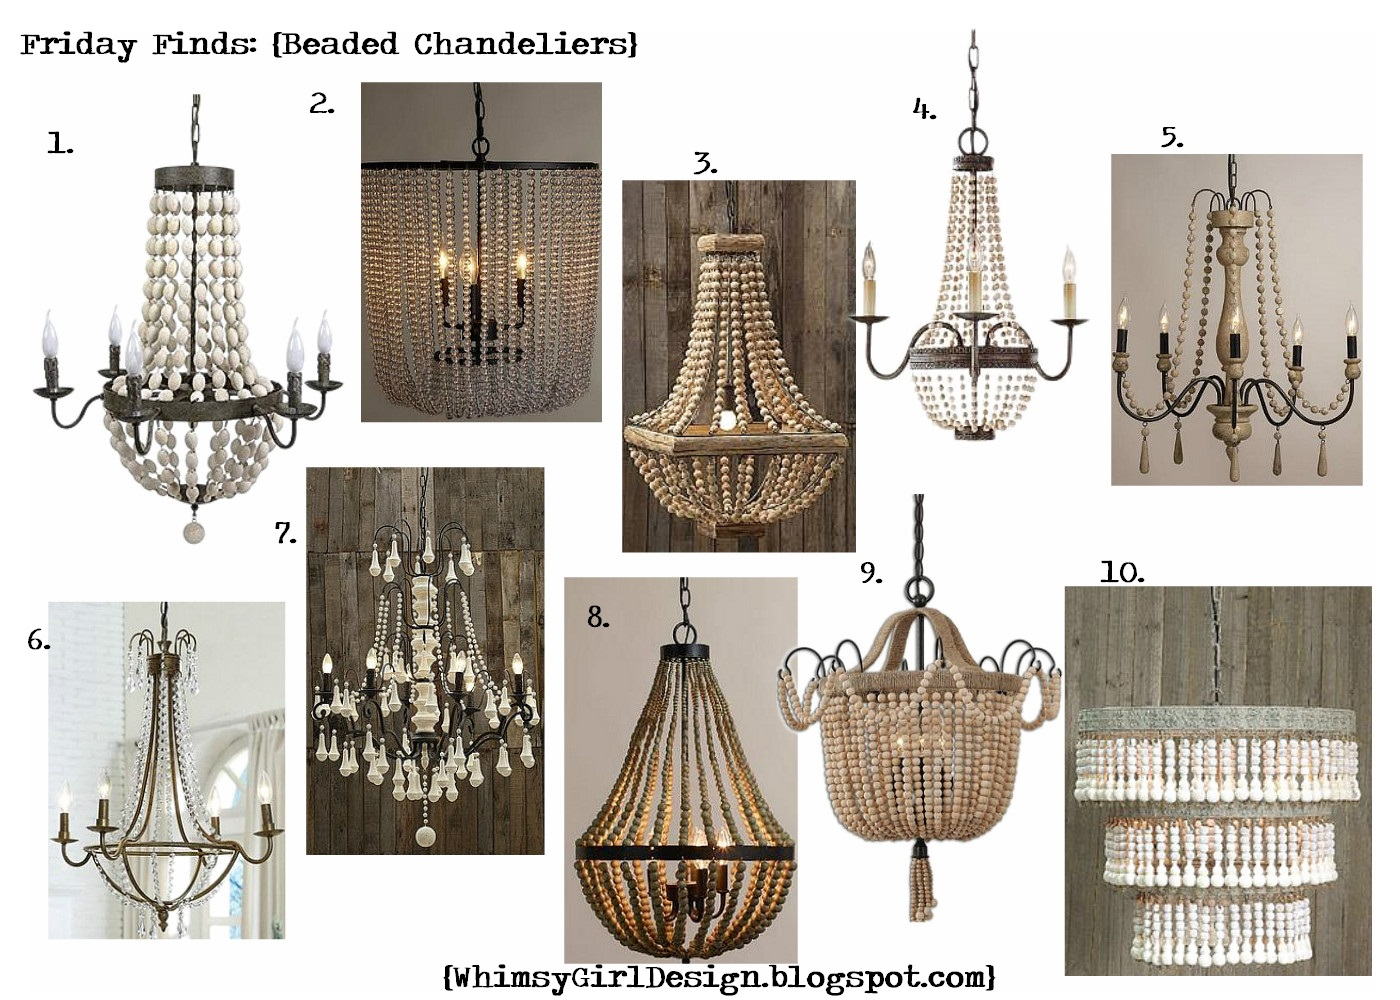 Whimsy girl friday finds beaded chandeliers click on description for source link arubaitofo Images